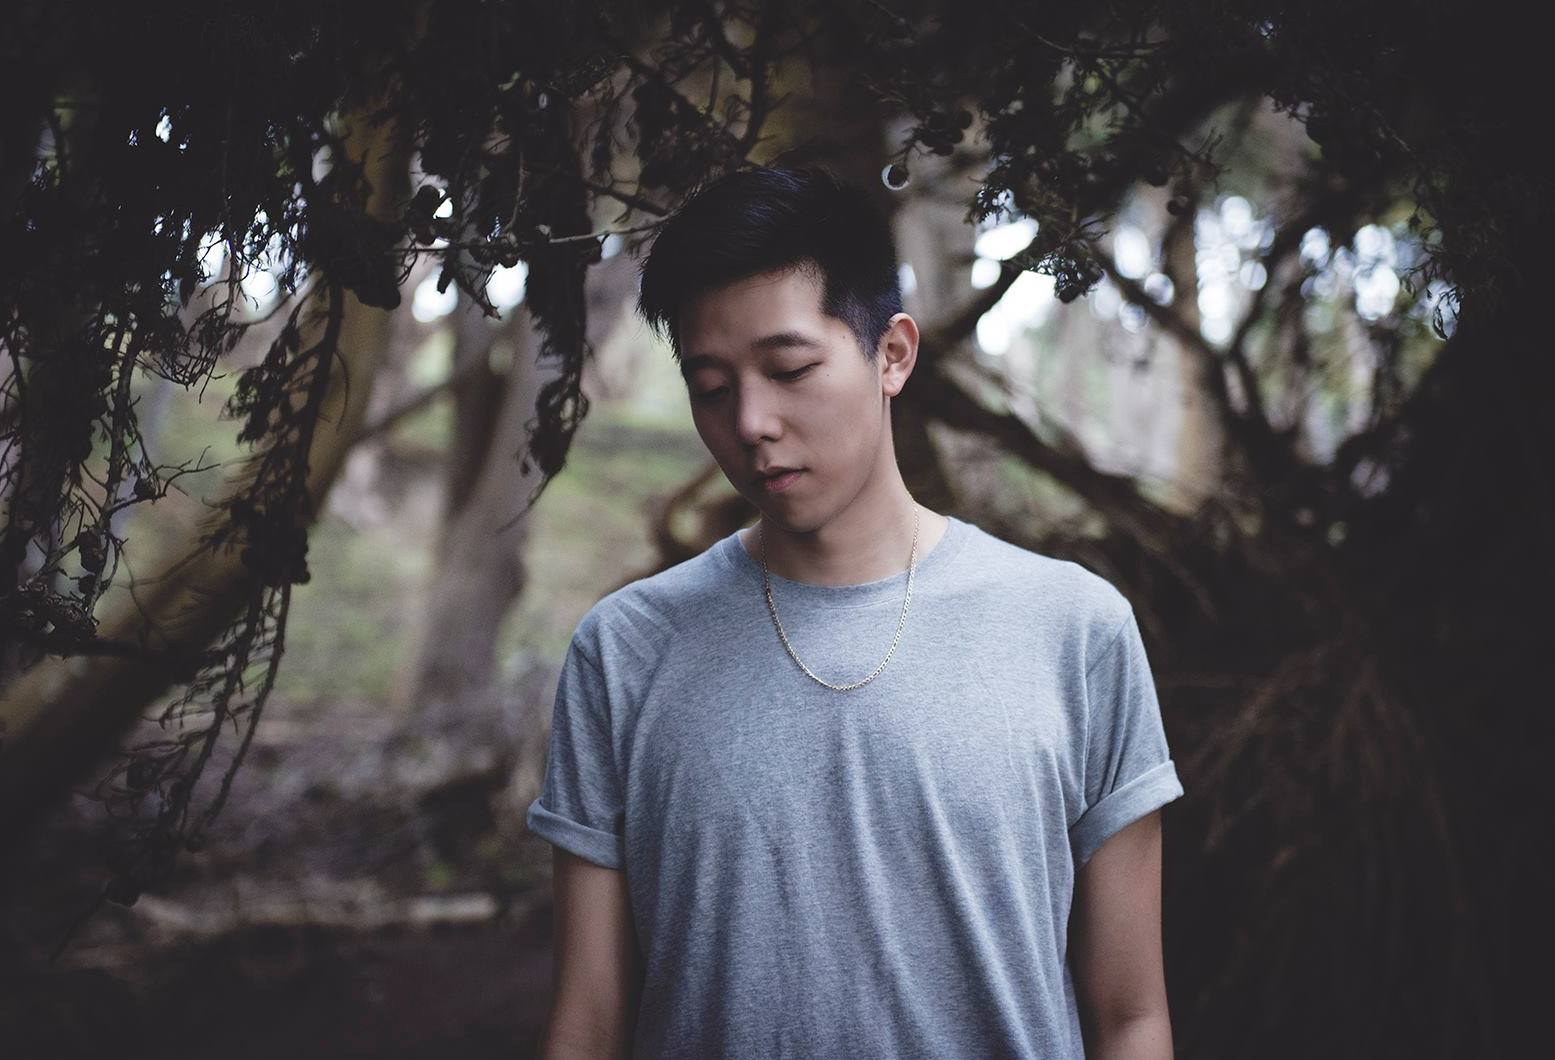 Giraffage Announces Headlining North American Tour